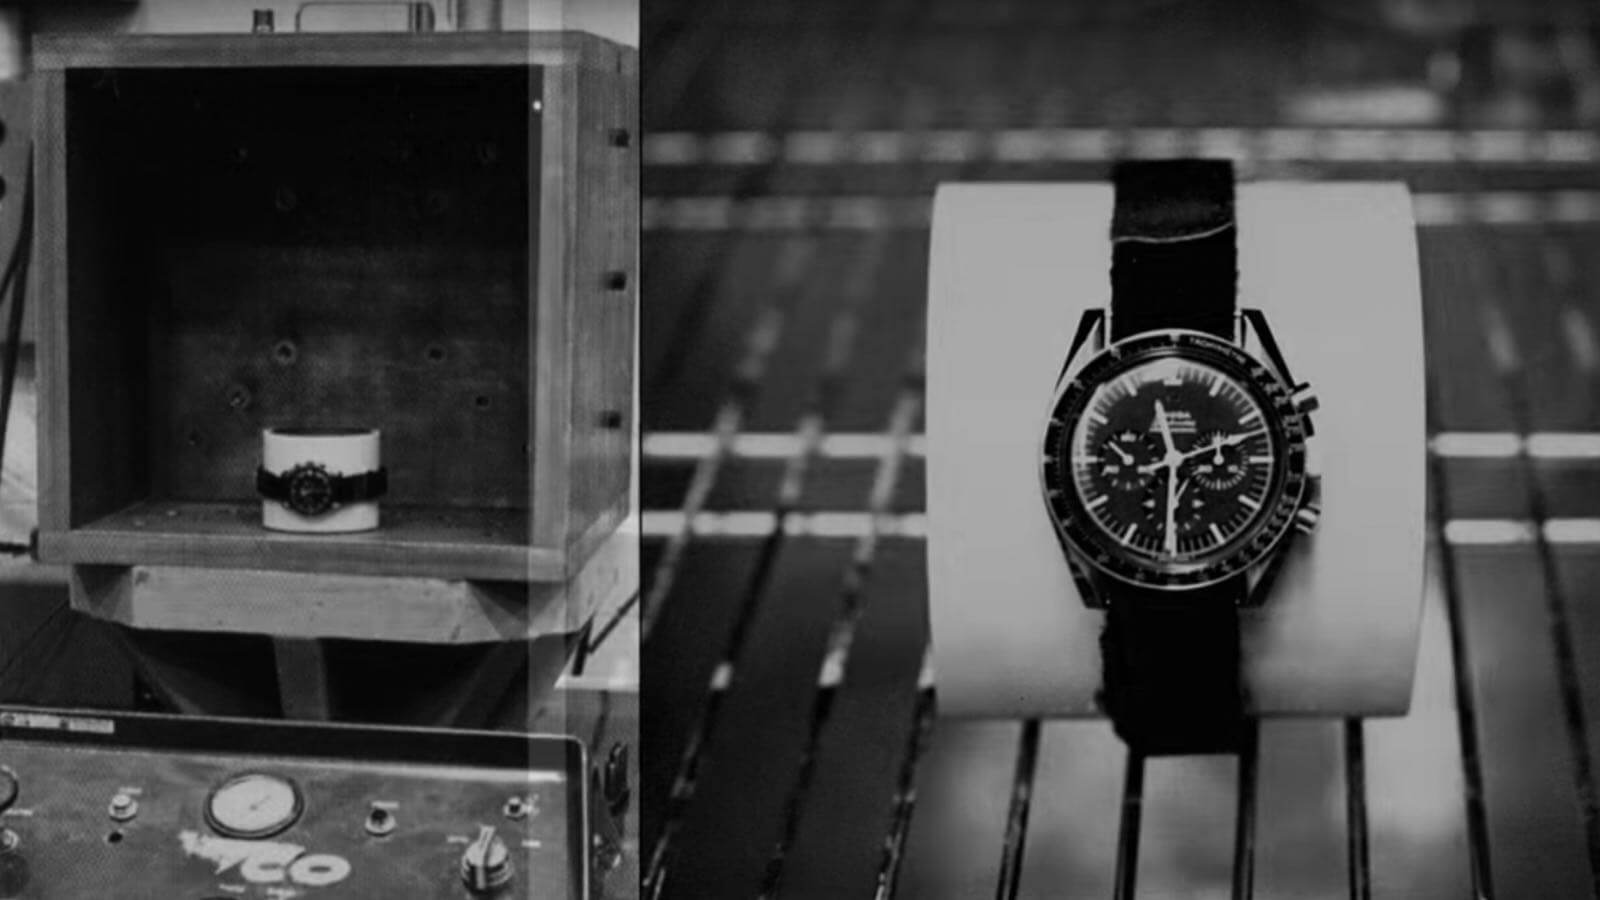 0029 The first watch I went to the moon  Omega Speedmaster story 05